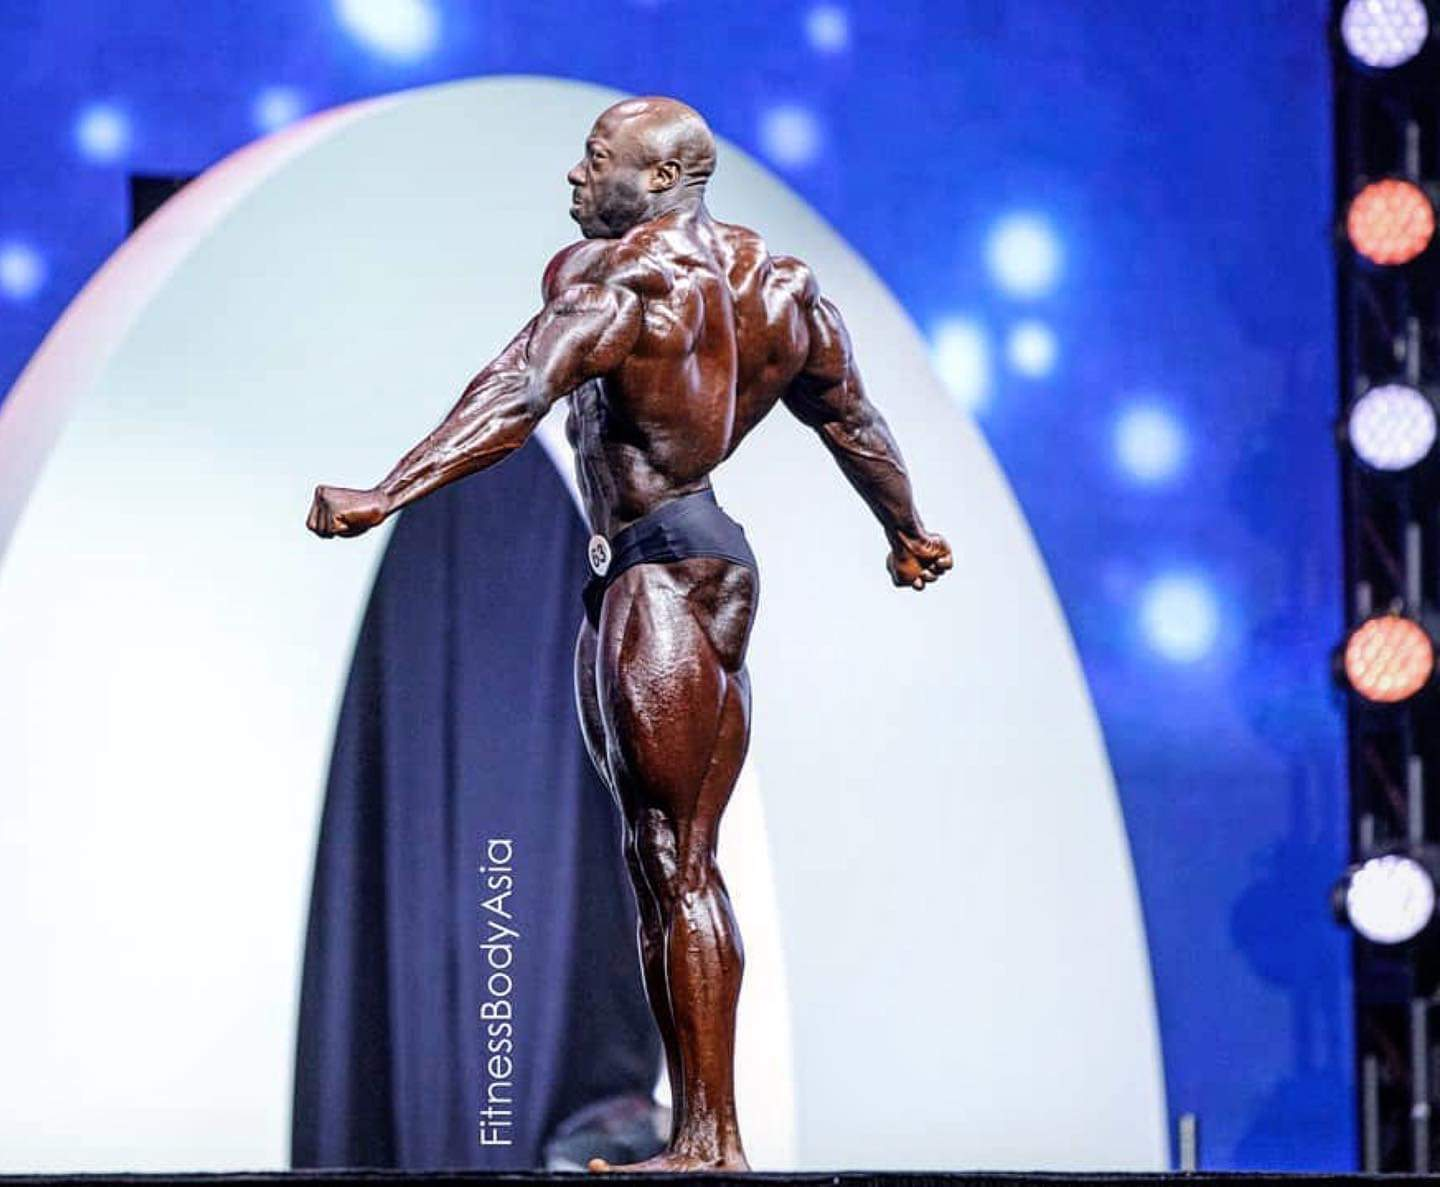 George Peterson sul palco del mister olympia nella categoria men's classic physique